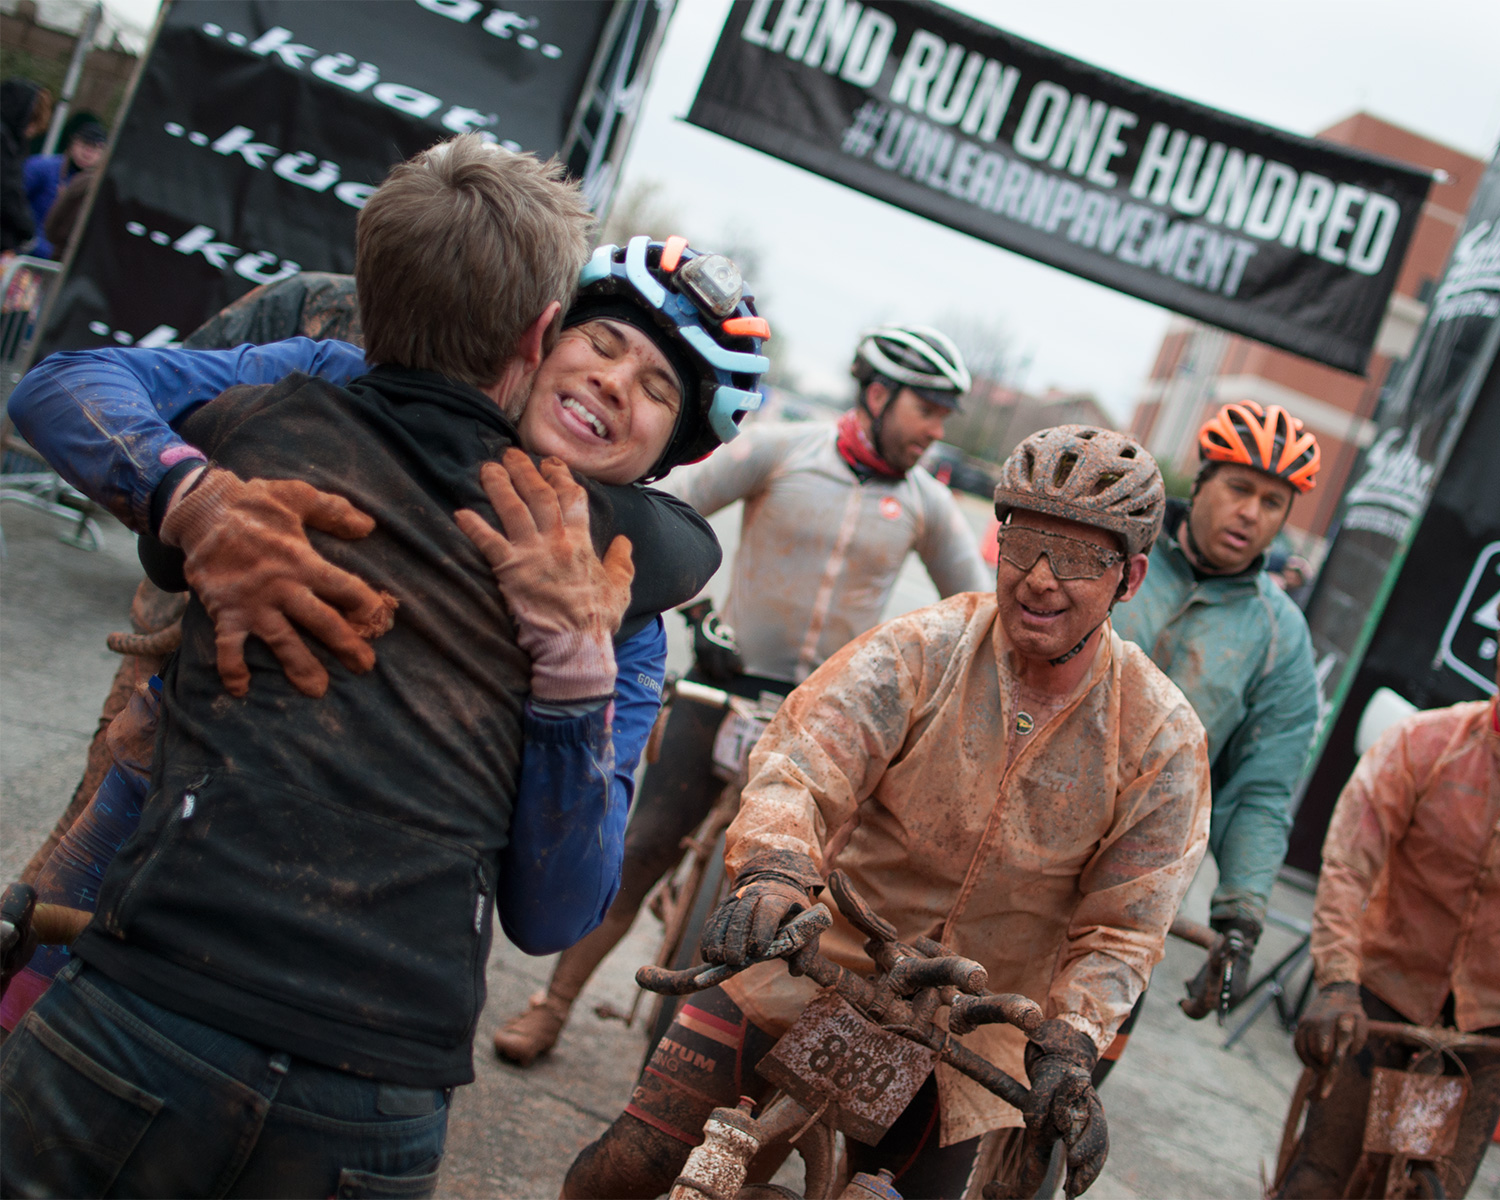 Andrea Cohen receives a warm embrace at the 2017 Land Run 100 finish line. Photo courtesy of Salsa Cycles